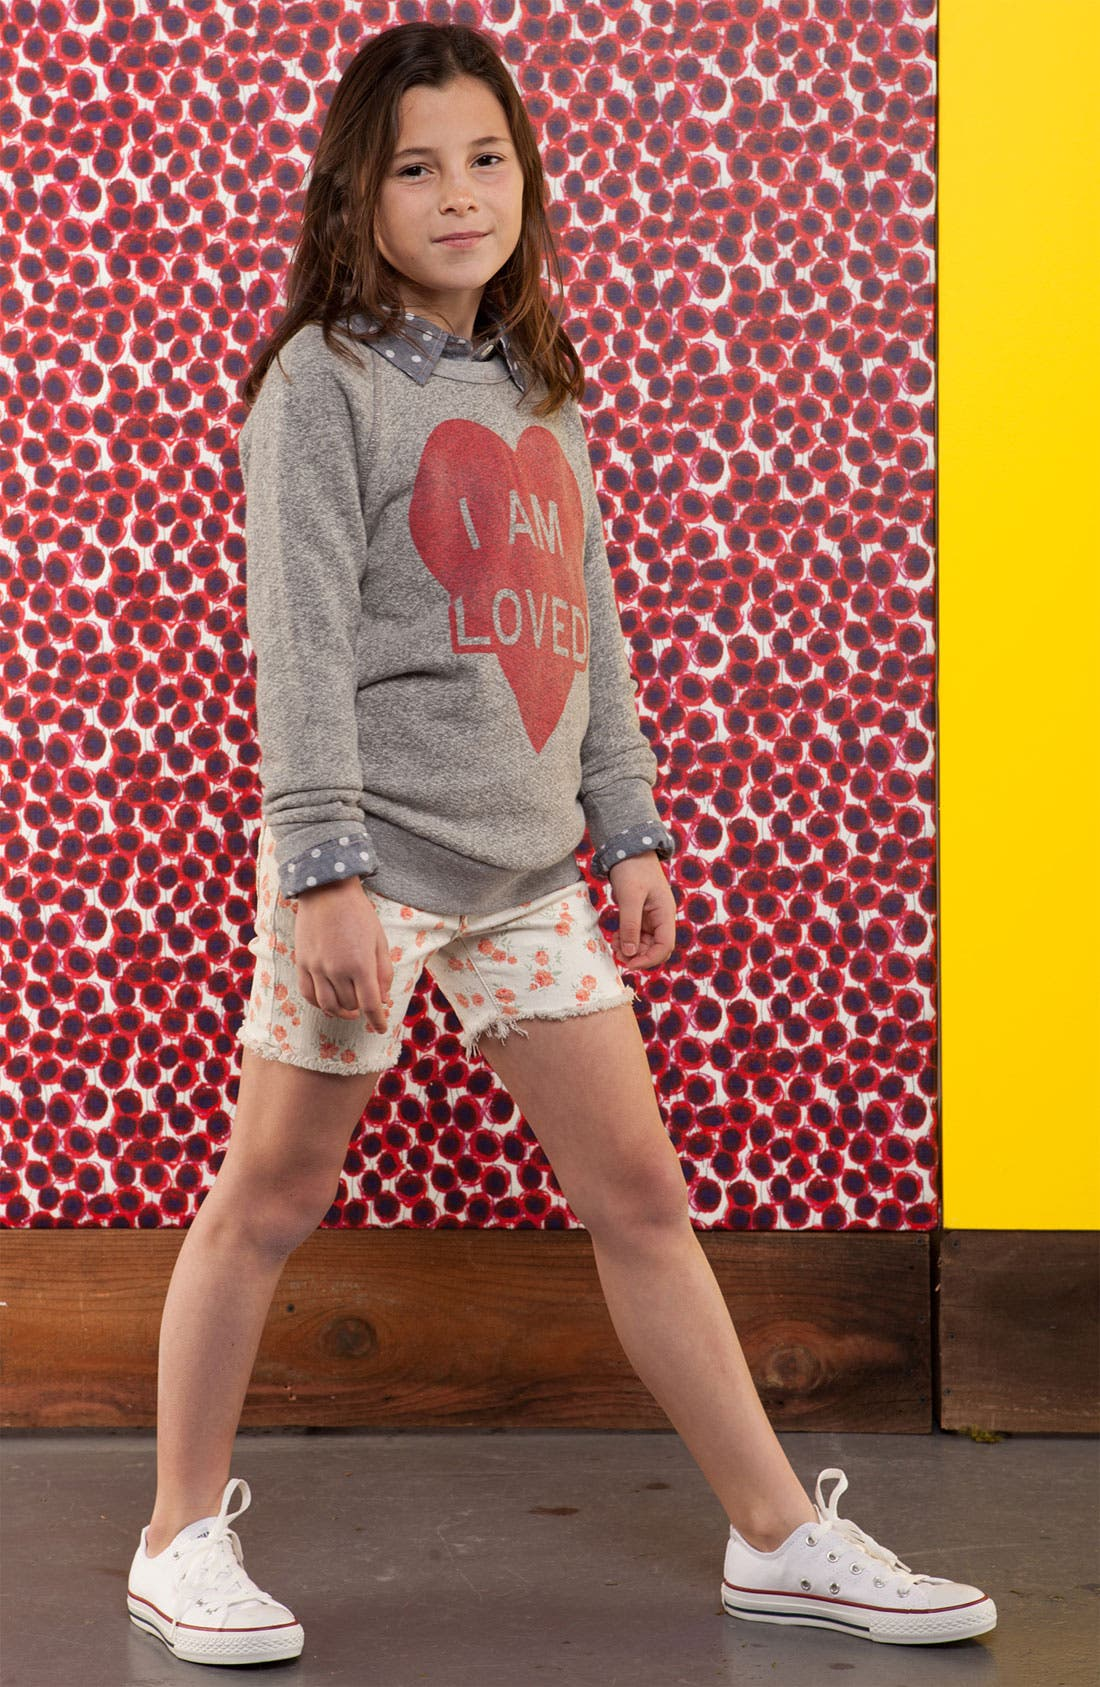 Alternate Image 2  - Peek 'I Am Loved' Sweater (Little Girls & Big Girls)